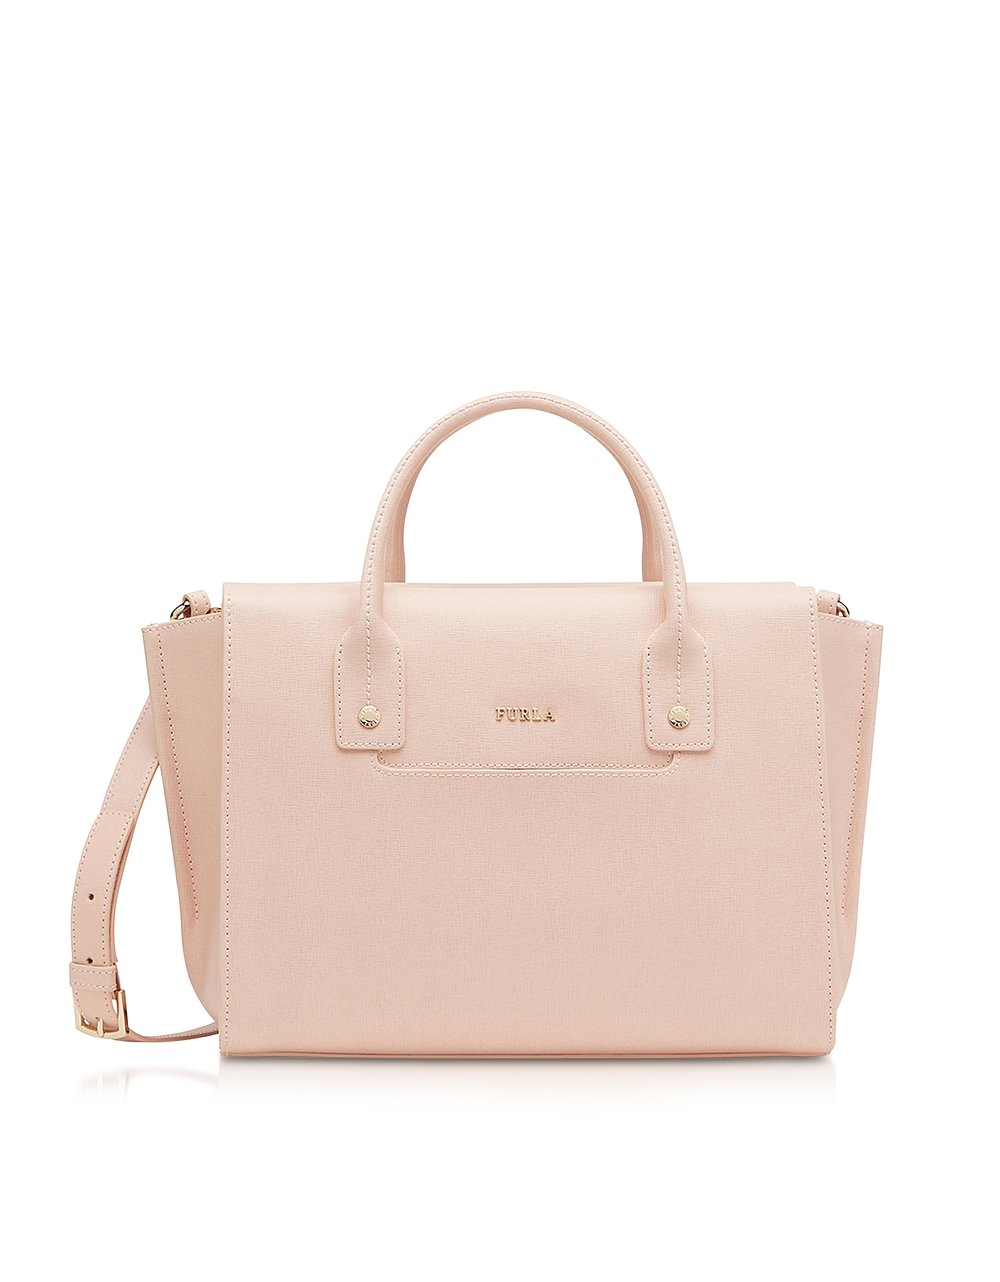 Furla Linda Magnolia Saffiano Leather Medium Carryall